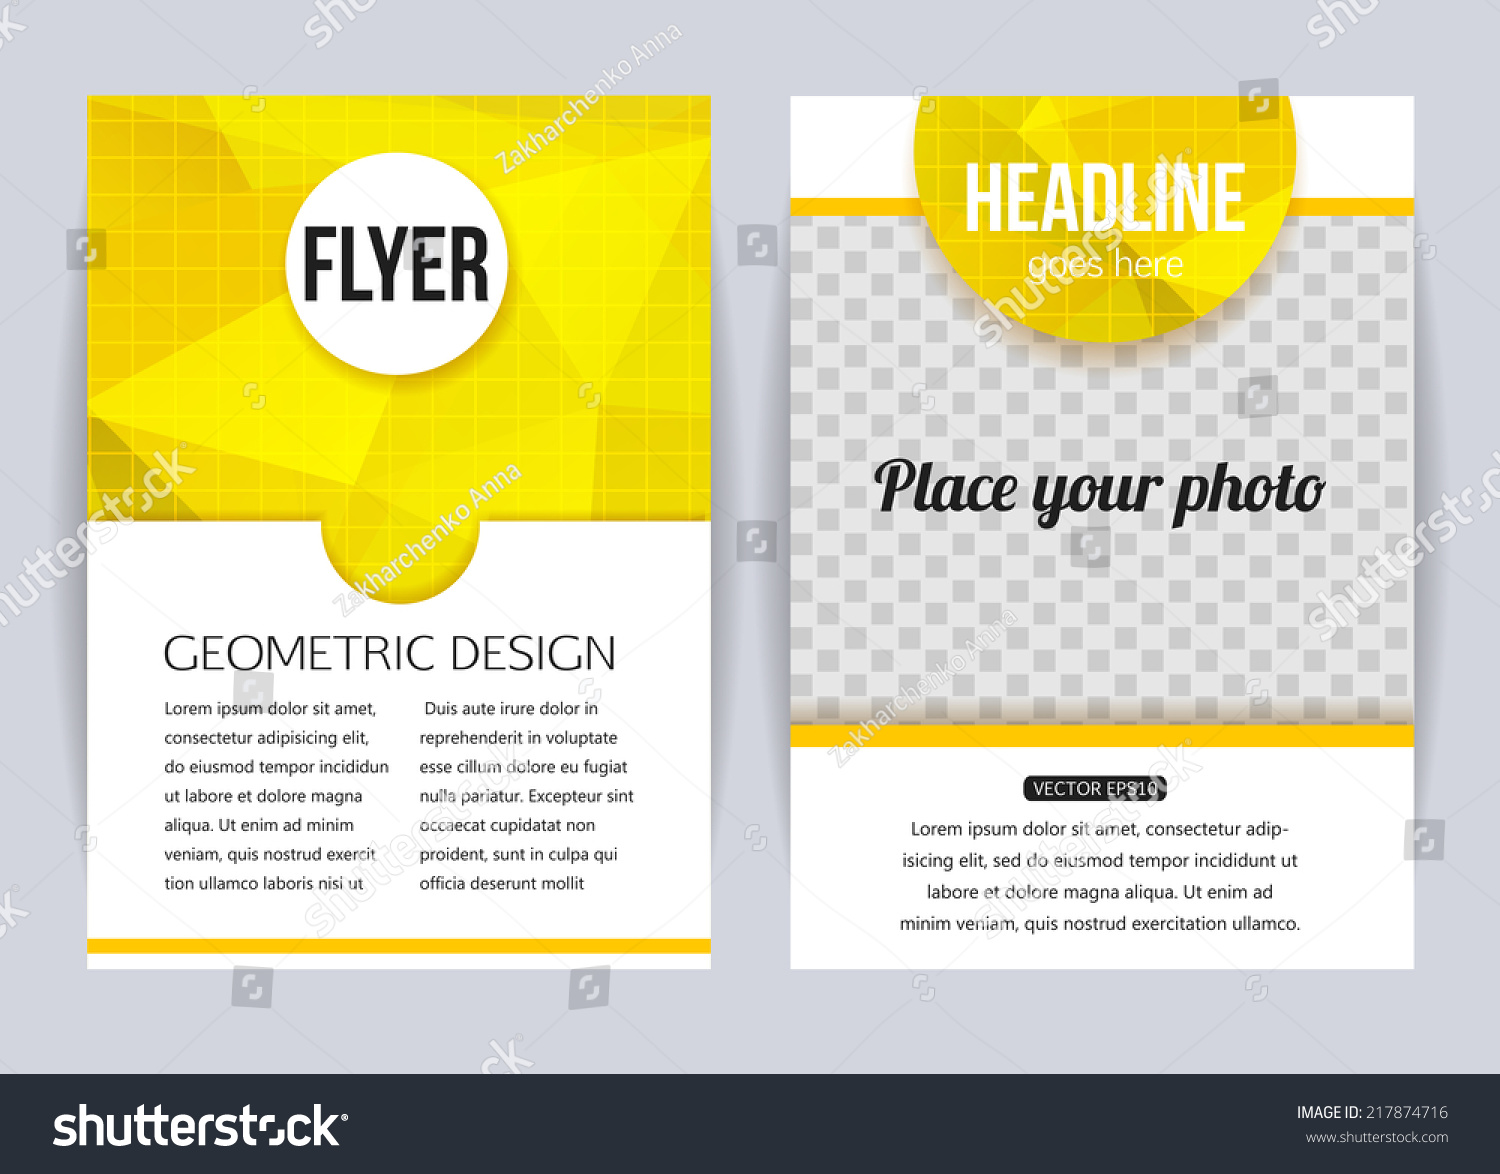 abstract brochure design templates modern back stock vector abstract brochure design templates modern back and front flyer backgrounds geometric design vector